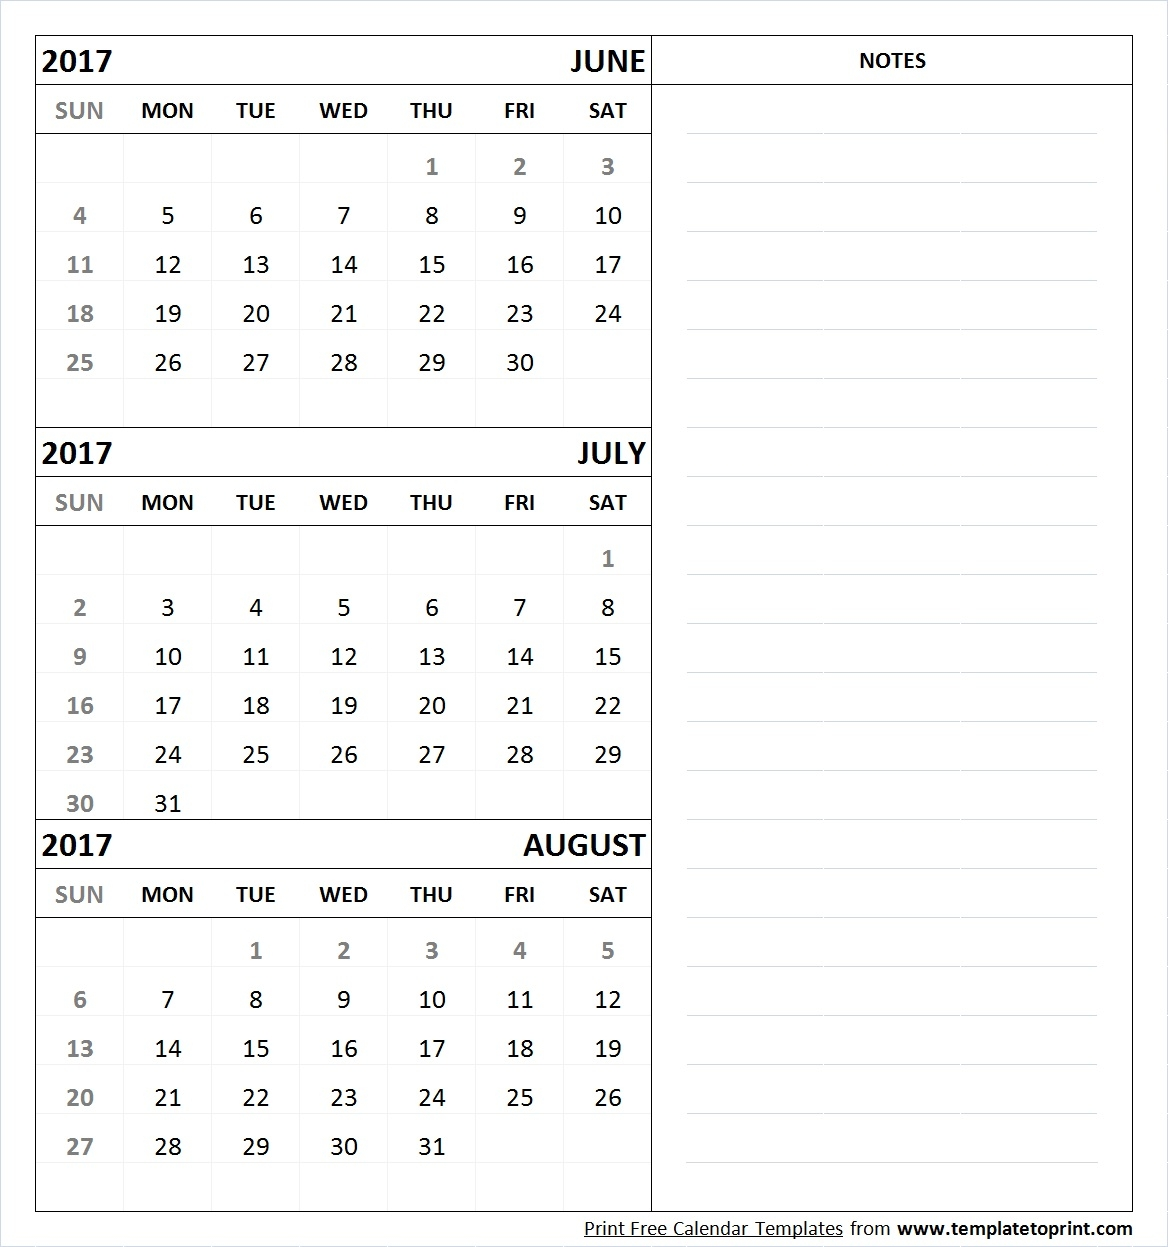 Free Print June July August 2017 Calendar Template Template To Print3abry